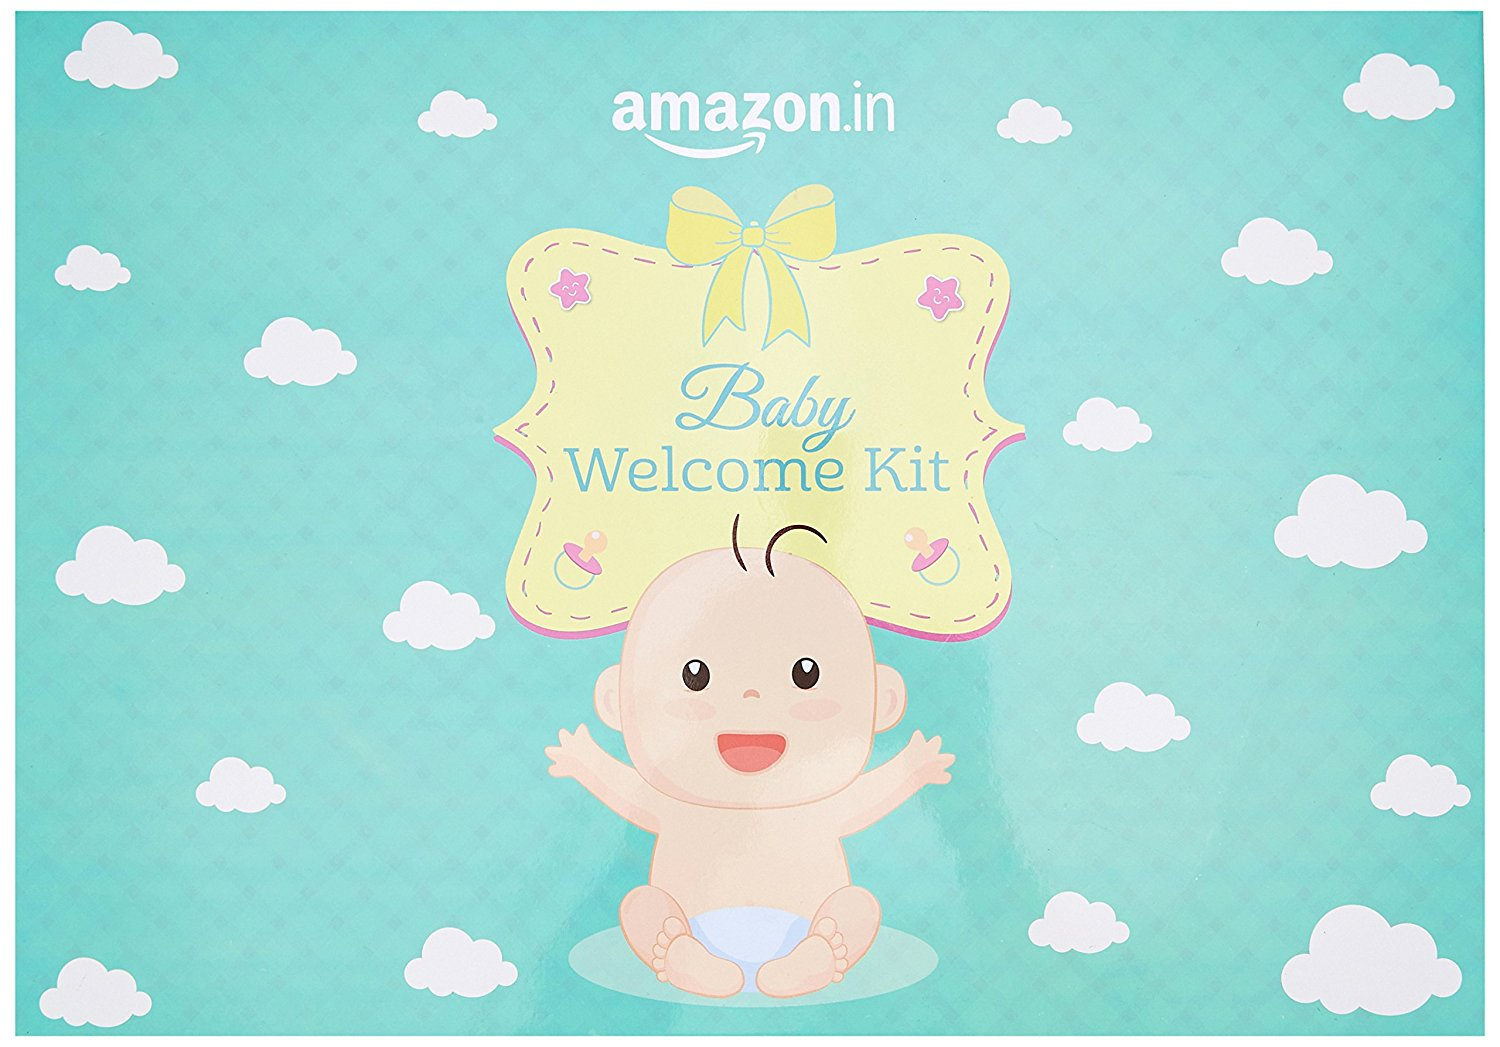 81KLSritp8L. SL1500  - (Loot) Get Amazon Baby Welcome Kit For Free